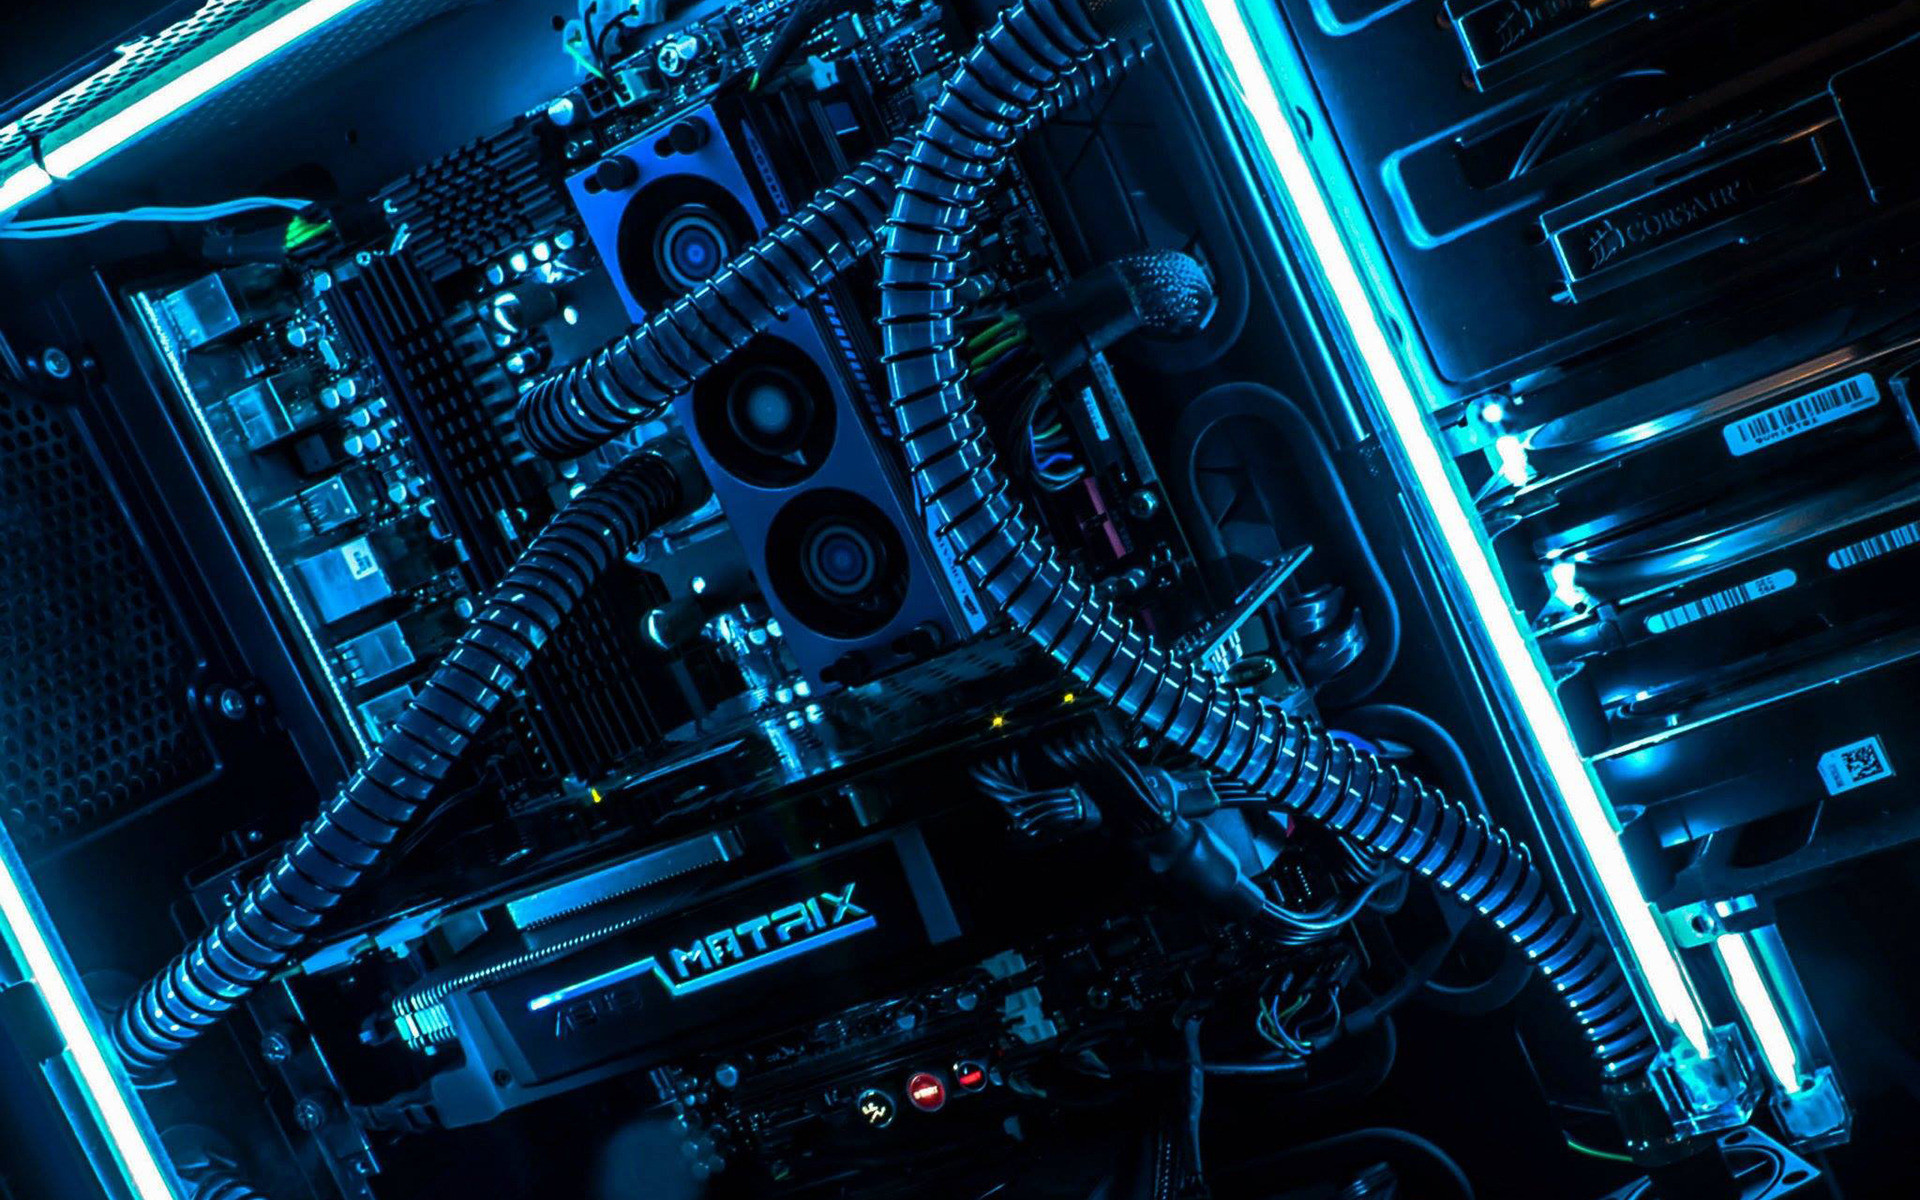 Gaming Pc Images For Desktop And Wallpaper